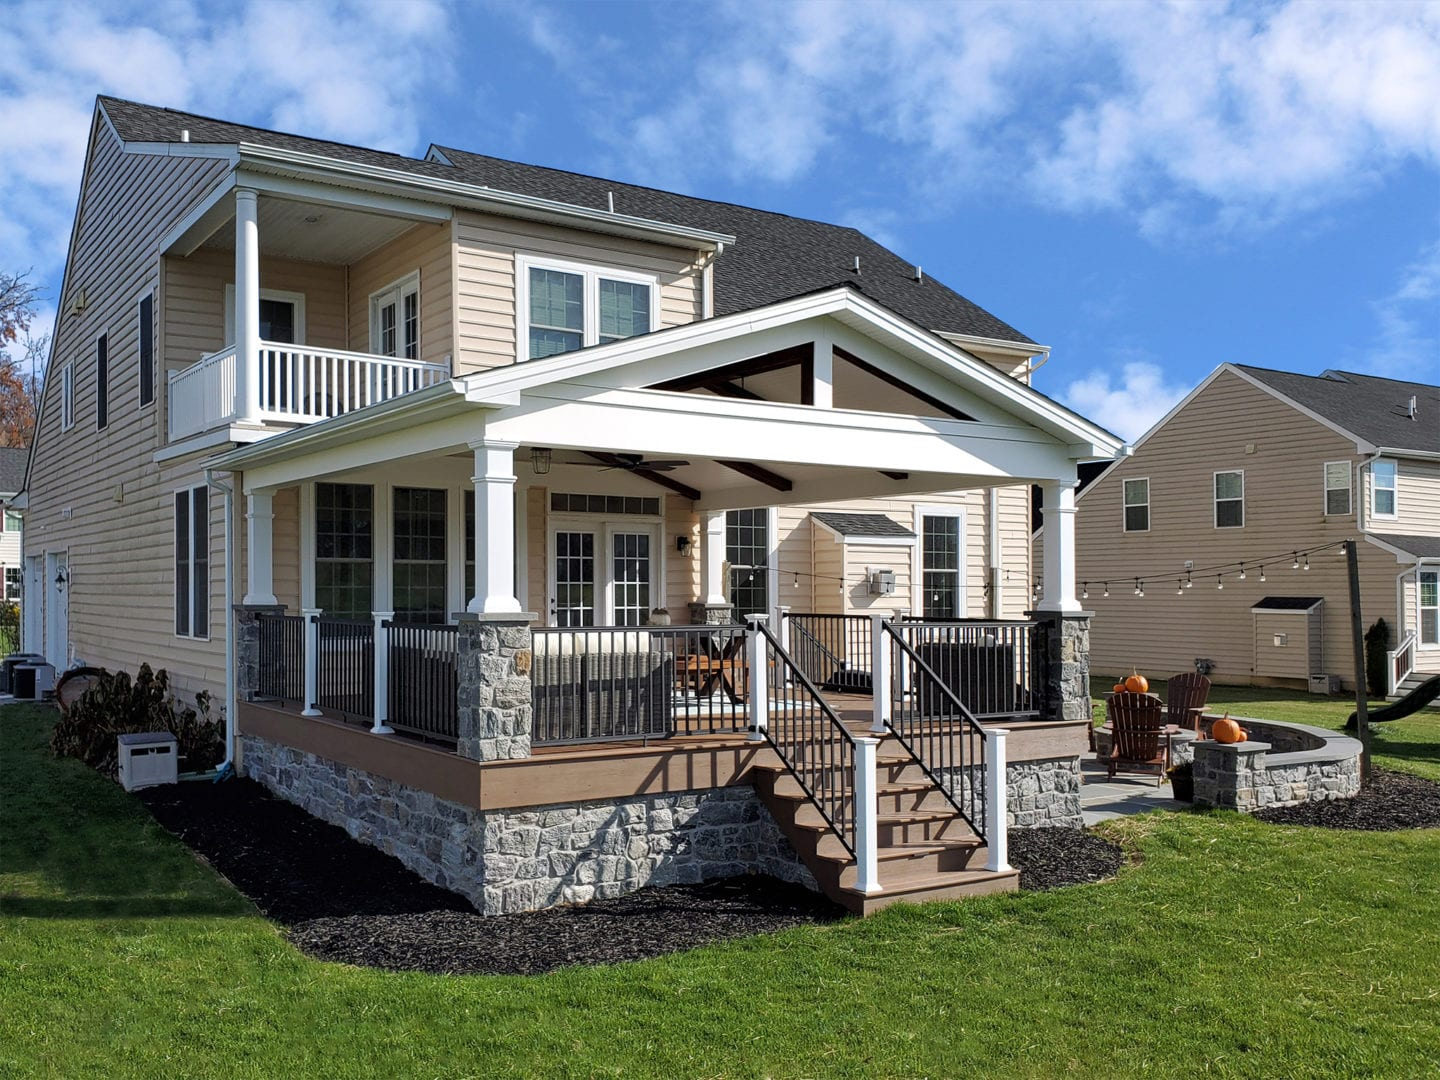 Deck Builders In Chester Lancaster County Outdoor Living Spaces